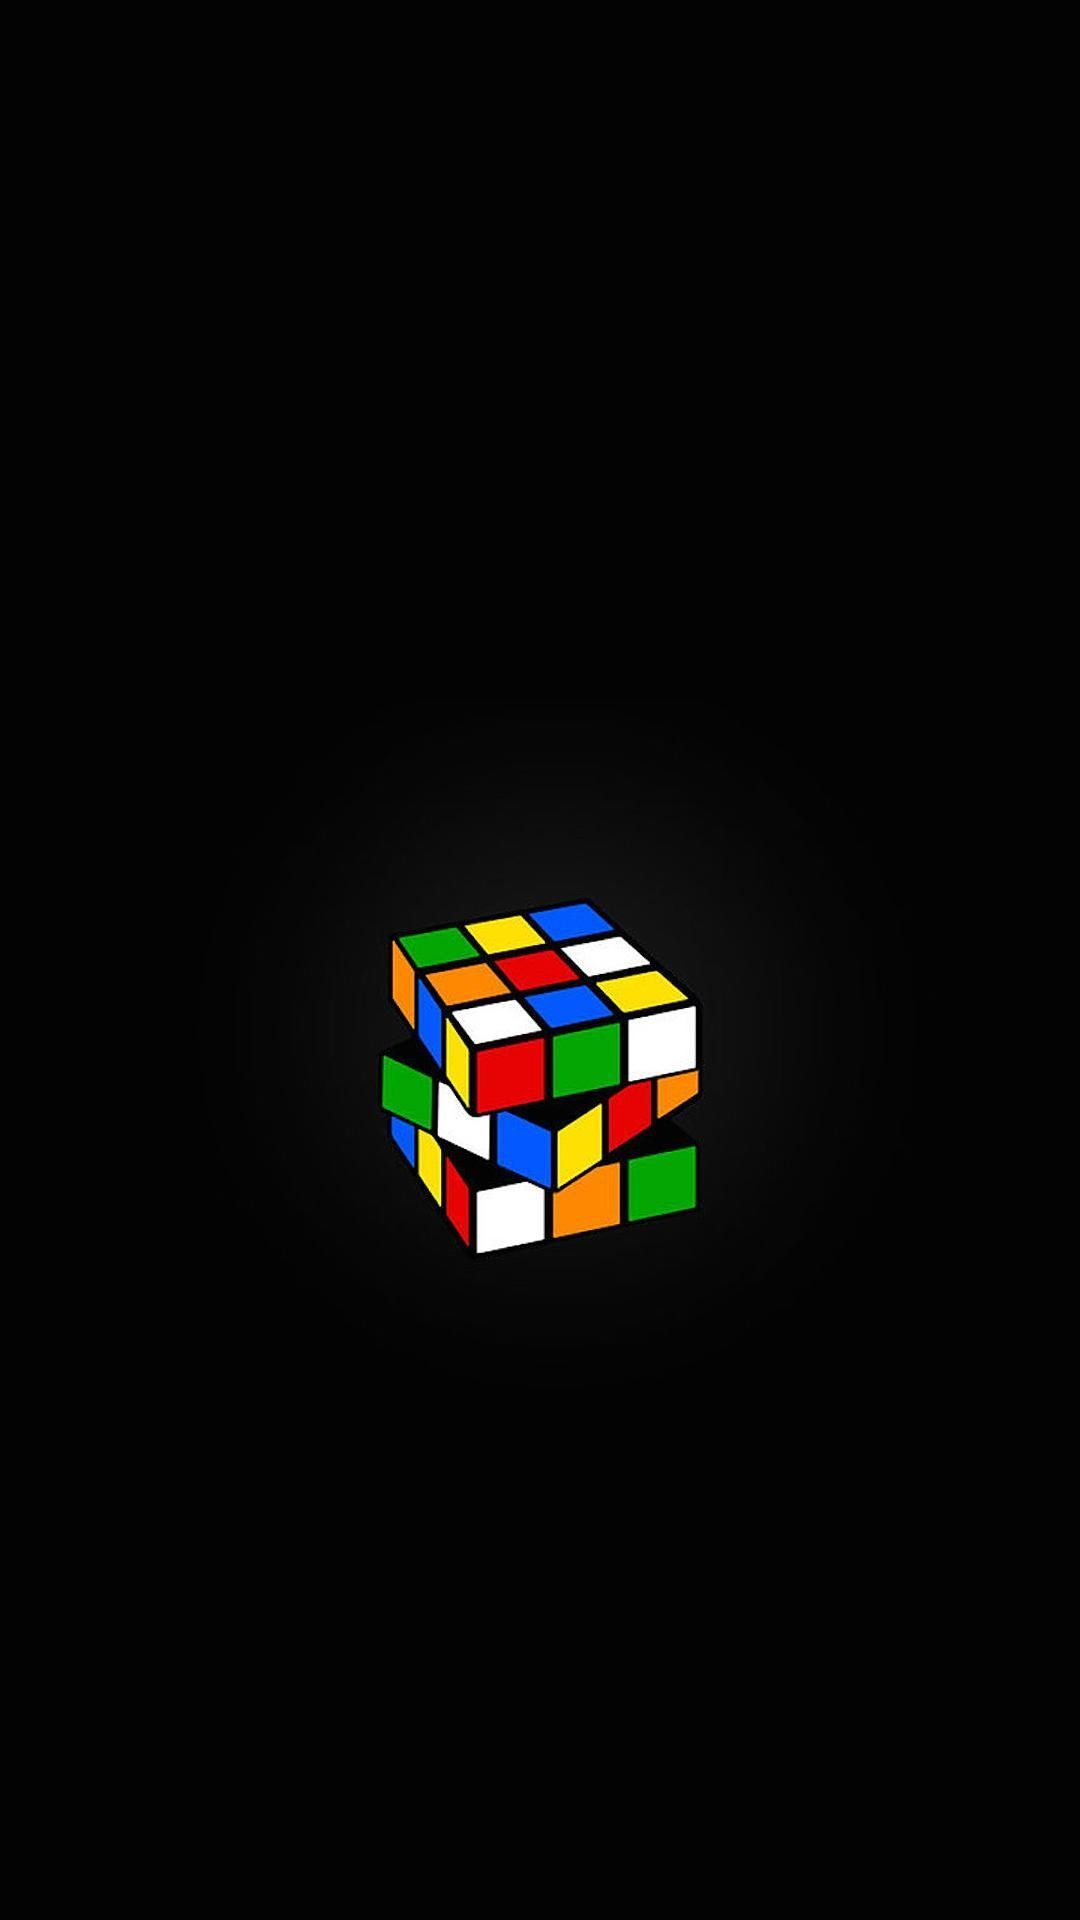 Rubik S Cube Wallpapers Top Free Rubik S Cube Backgrounds Wallpaperaccess